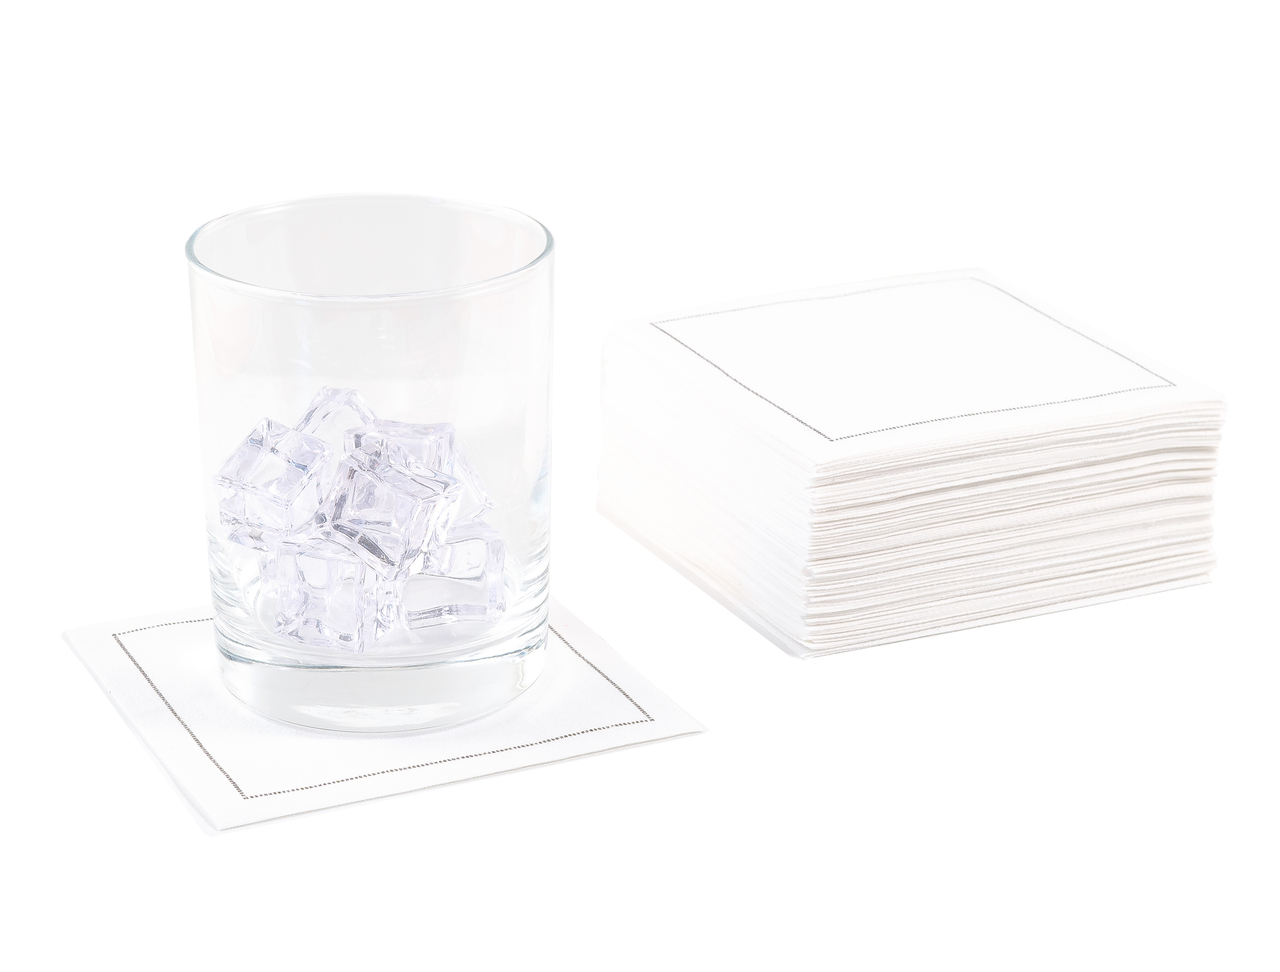 "White Cotton Cocktail (200 GSM) - 4.5"" x 4.5"" - 1200 Units"